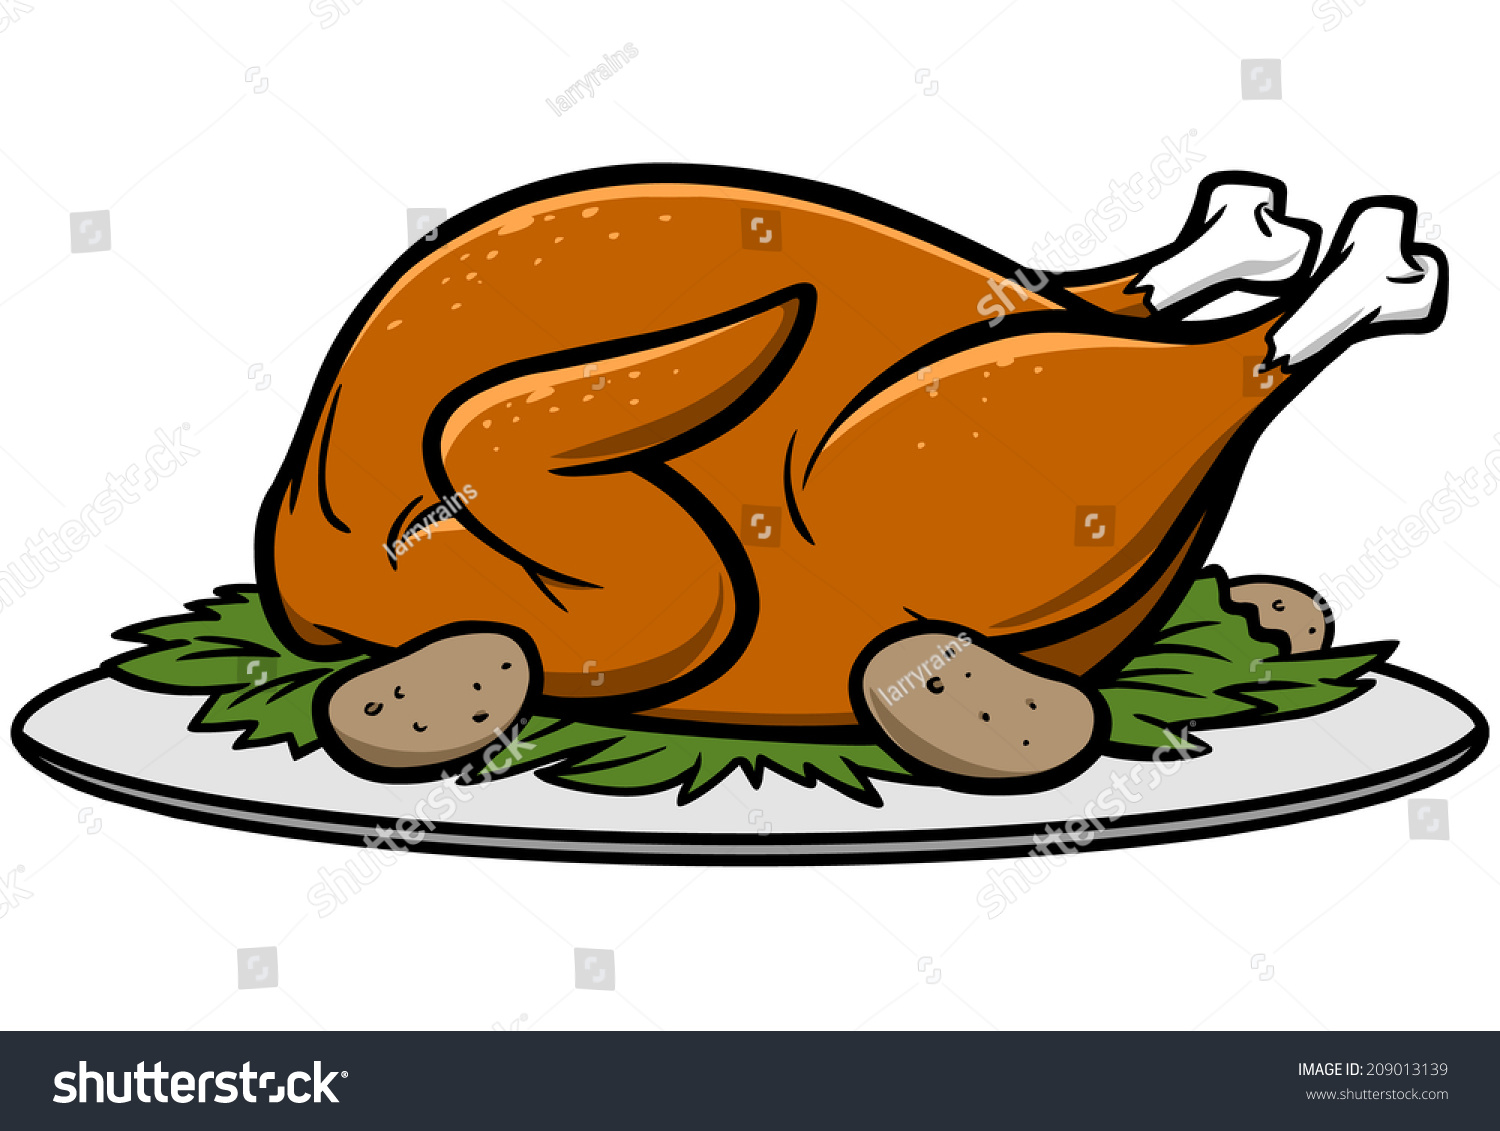 Thanksgiving turkey dinner drawing - photo#18